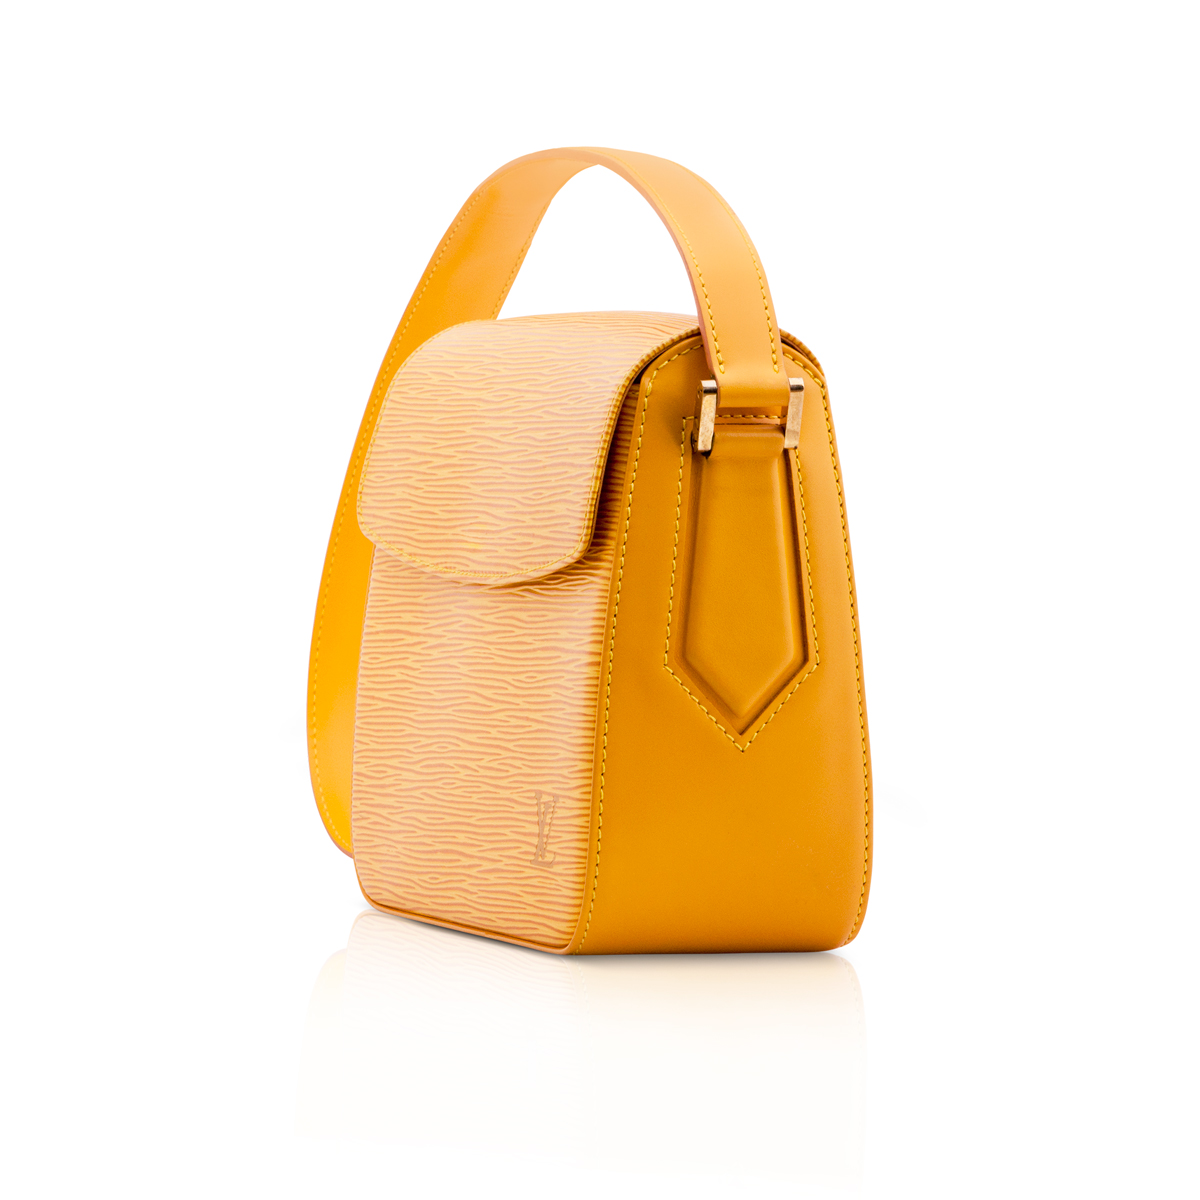 dfe9a97b068c louis vuitton yellow bag - Seasons Vintage